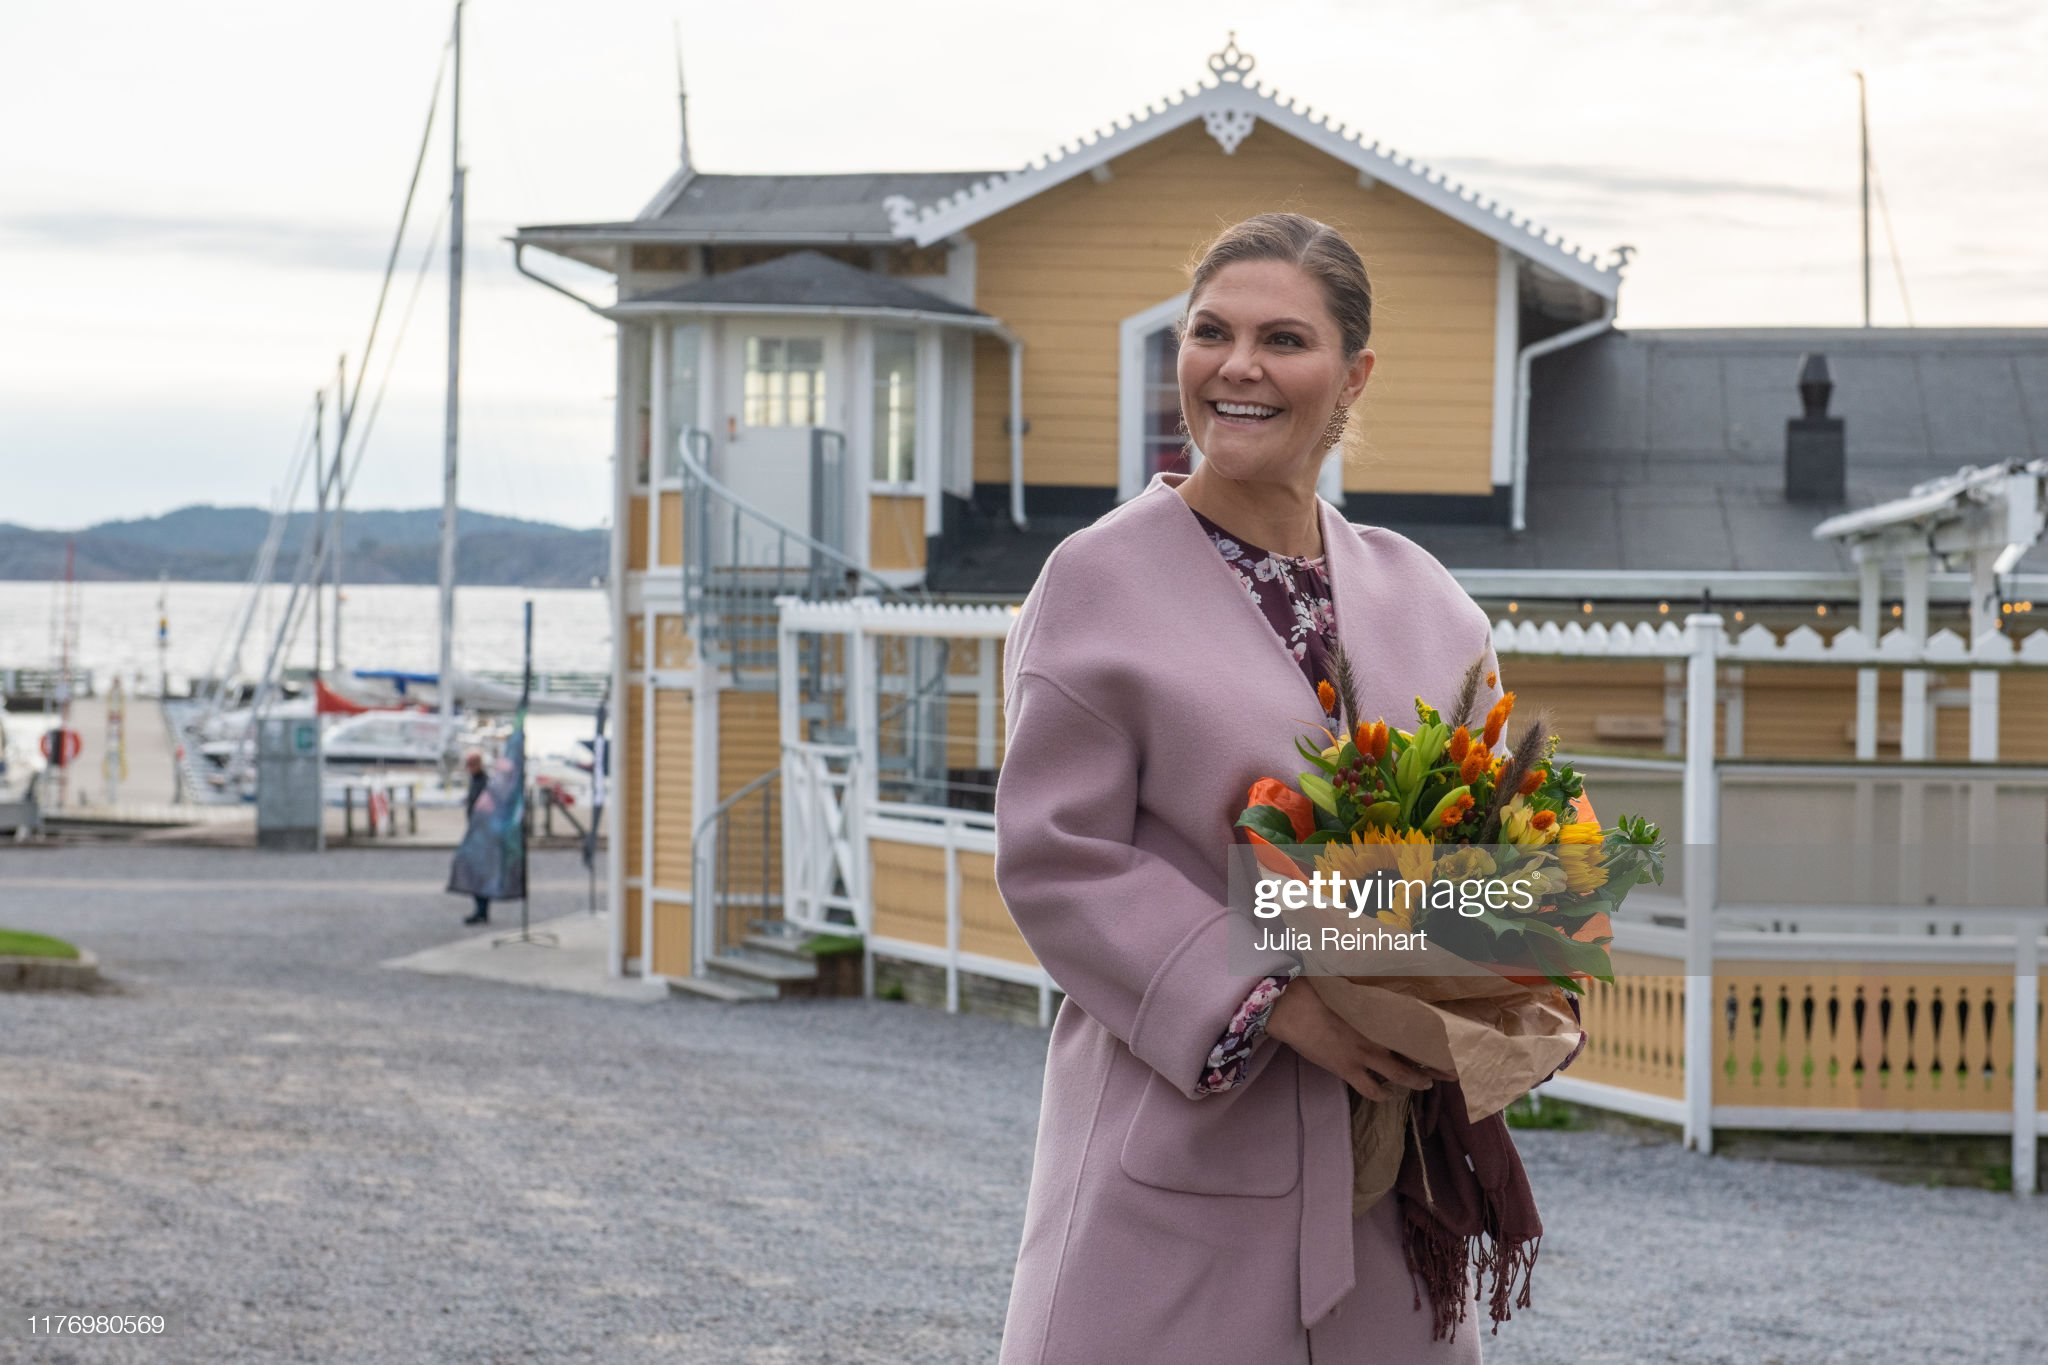 crown-princess-victoria-arrives-for-her-visit-to-the-sea-fish-on-25-picture-id1176980569